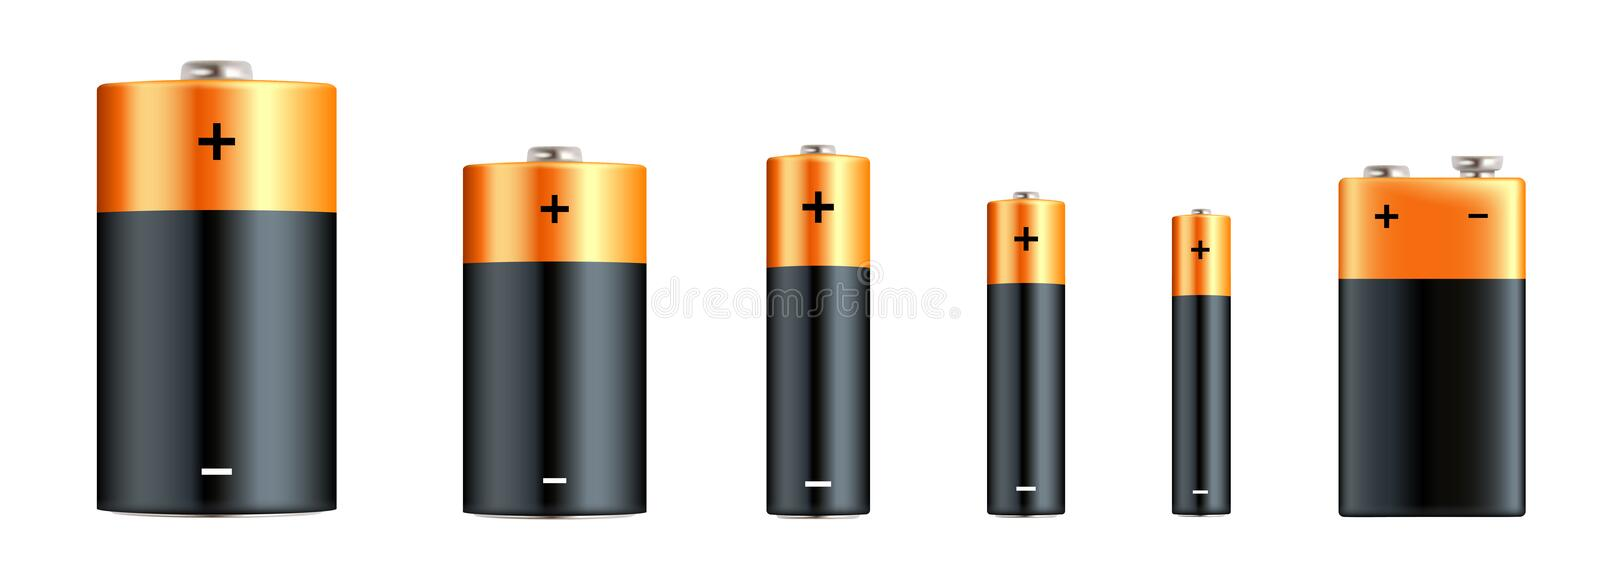 Alkaline batteries realistic set. Types of batteries. Size - D, C, AA, AAA, AAAA, PP3. Alkaline battery set with diffrent size - stock image